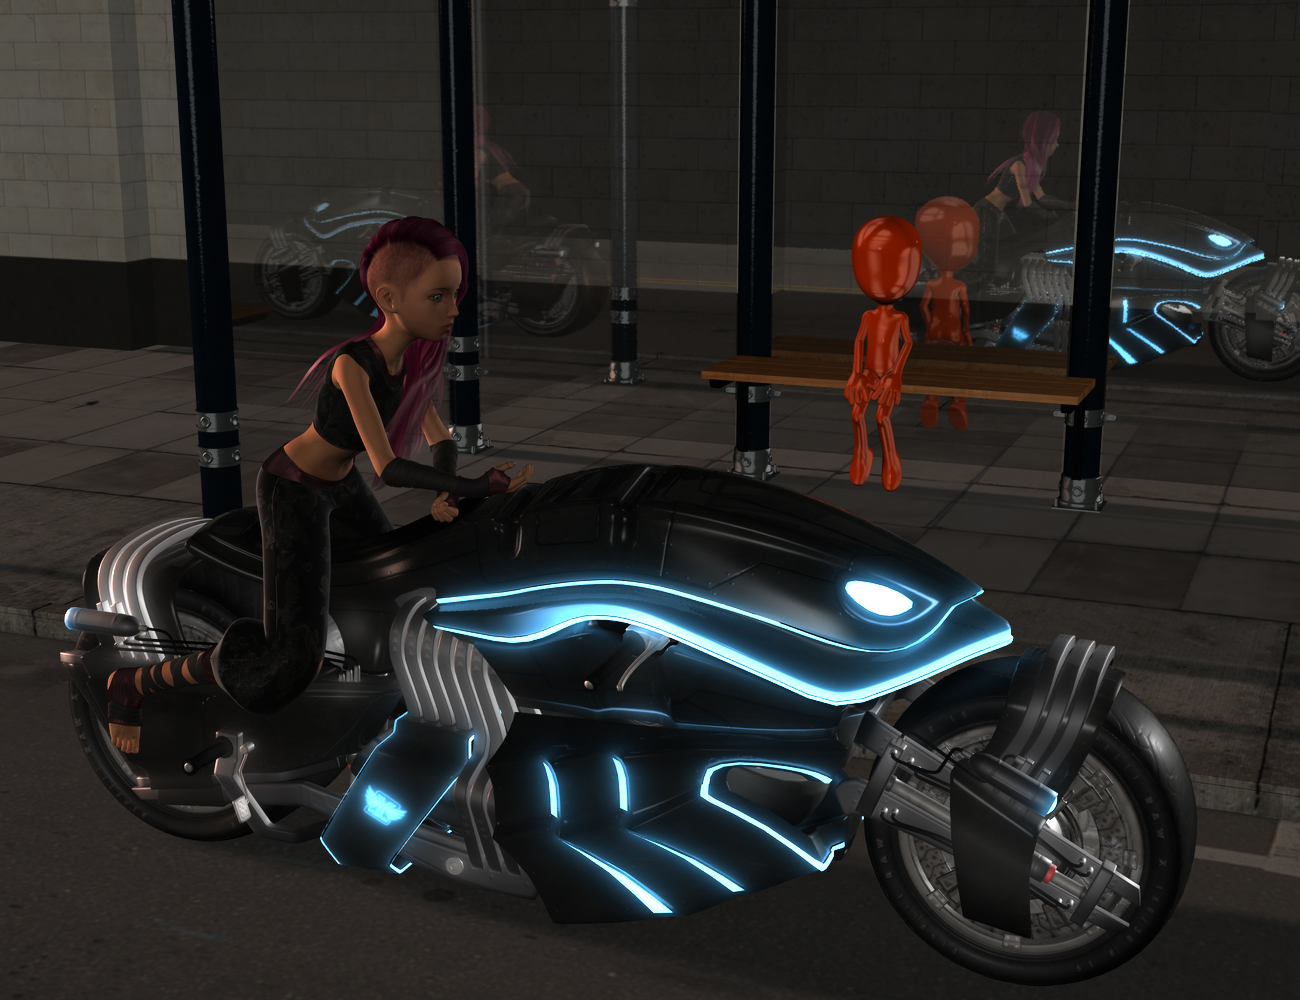 An odd tableau featuring an orange generic human form sitting at a bus stop and a hottie riding an awesome motorbike.